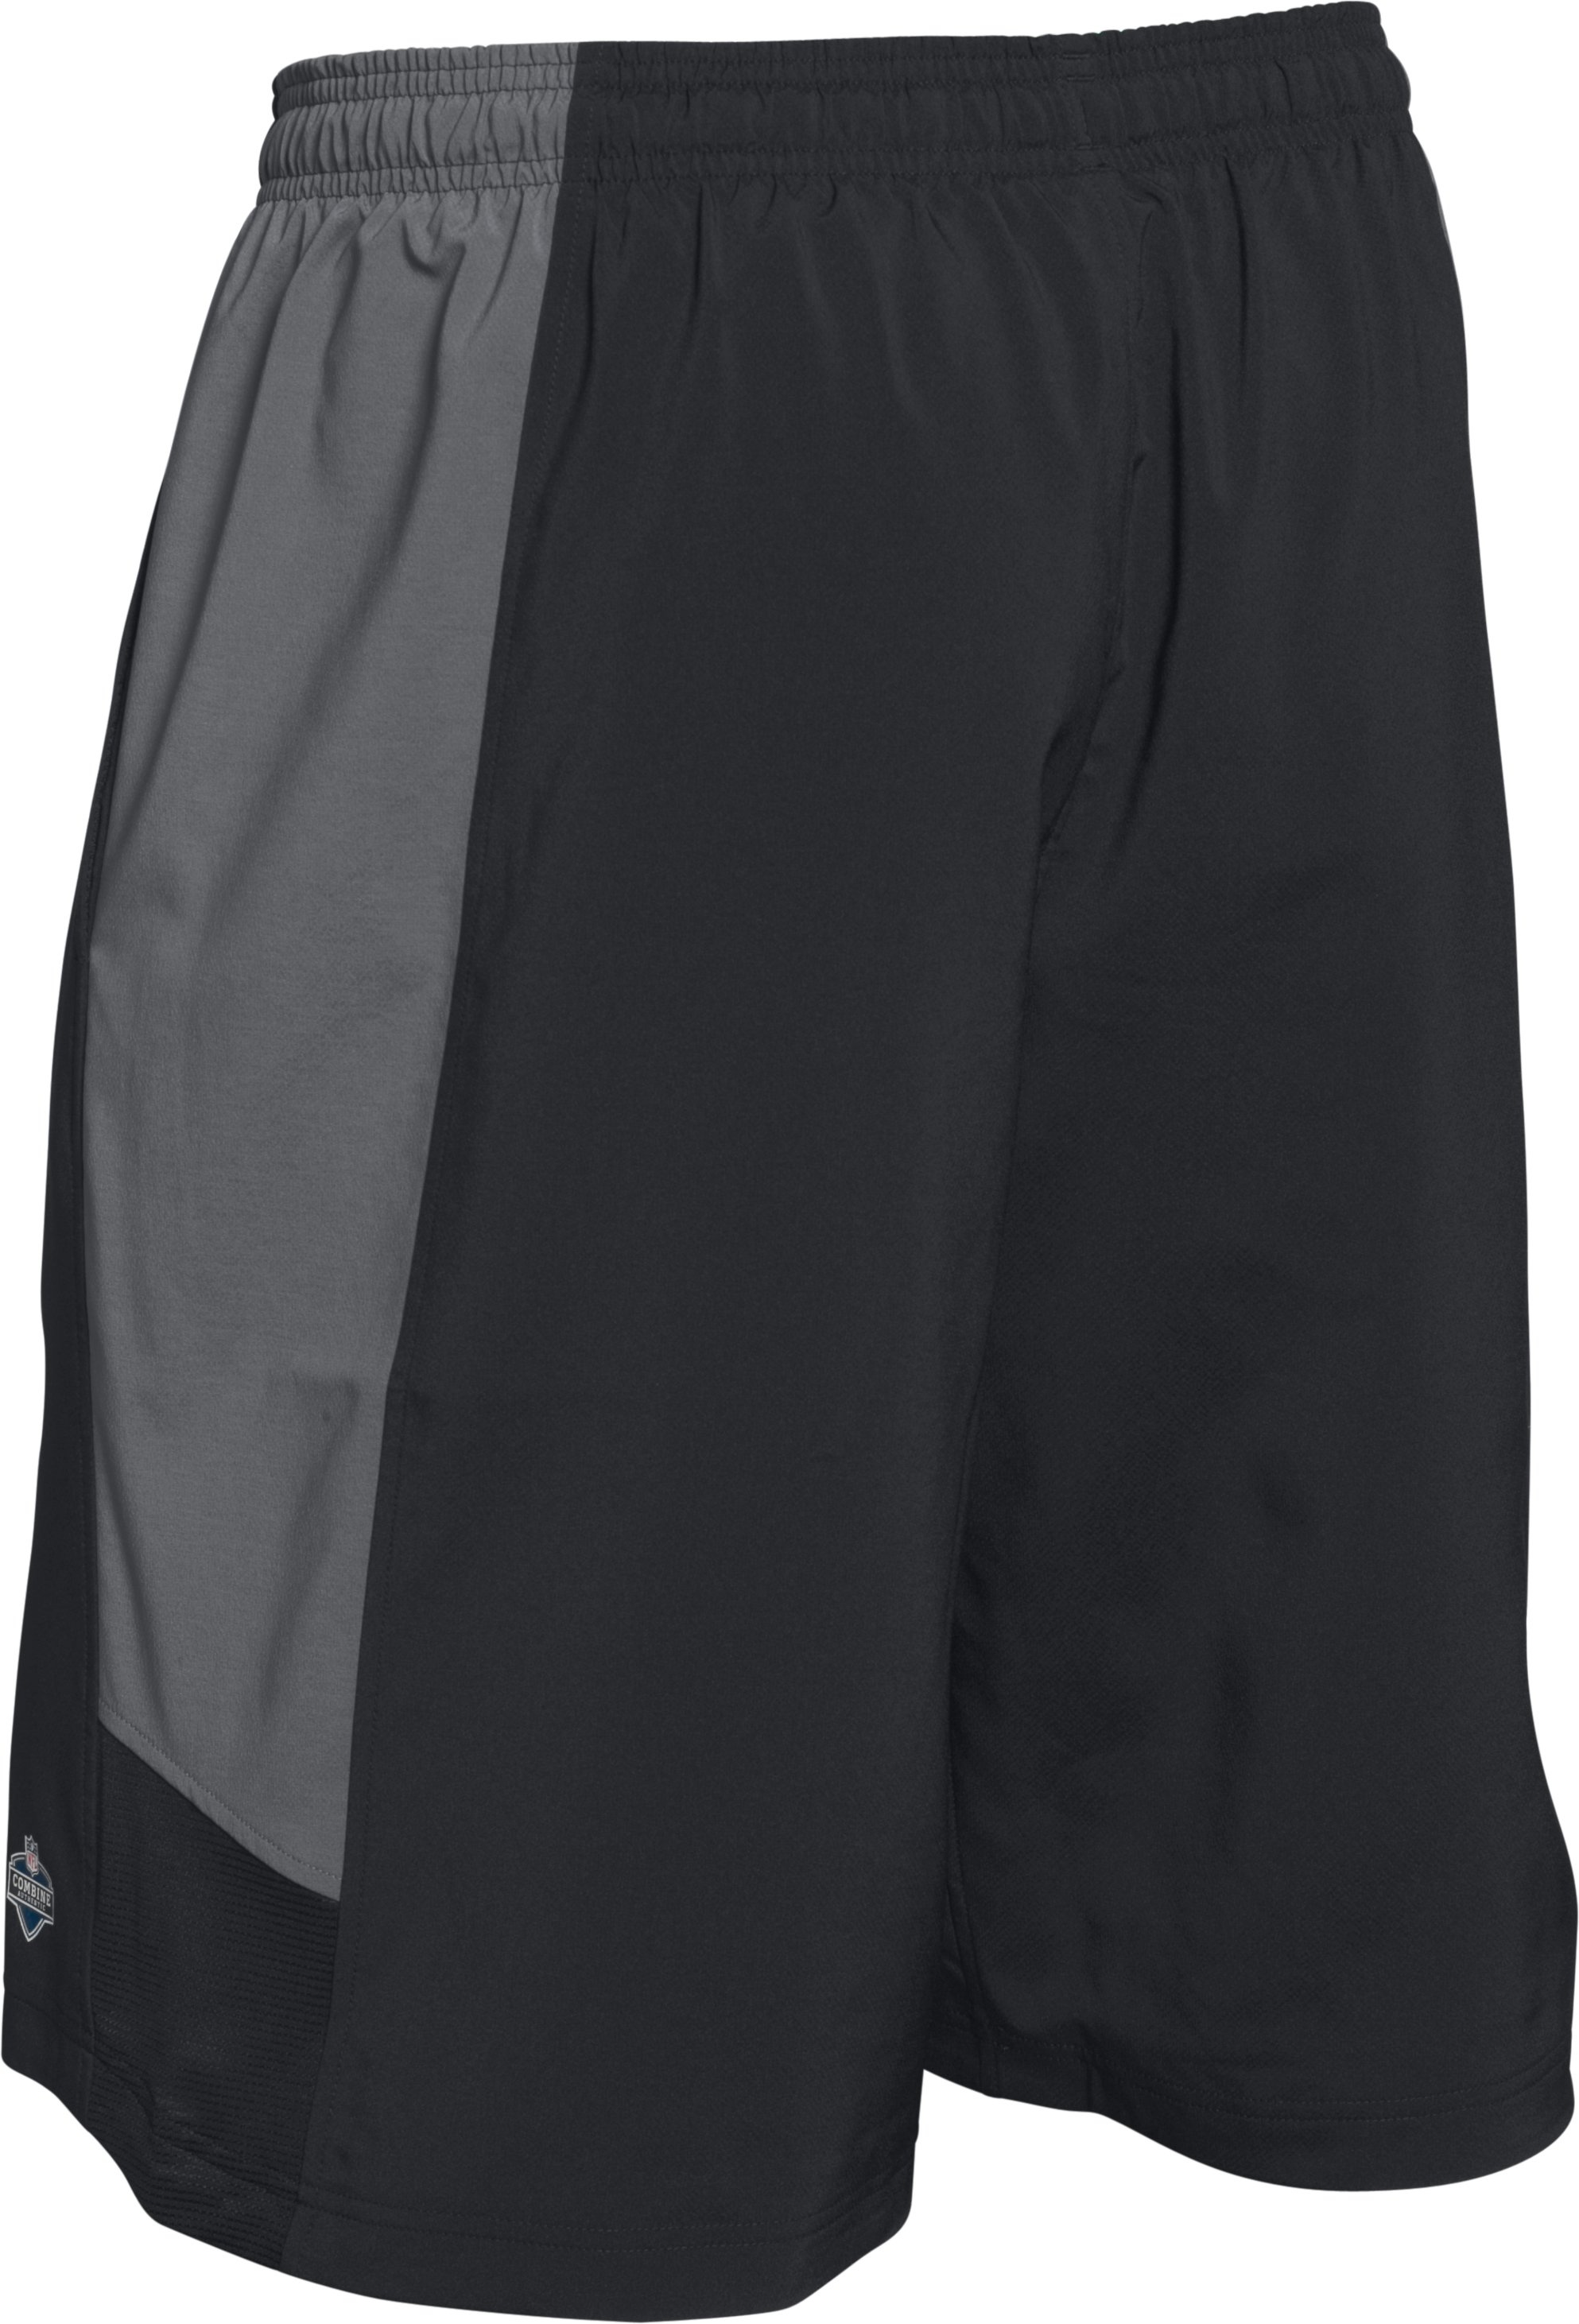 Men's NFL Combine Authentic Shorts, Black ,